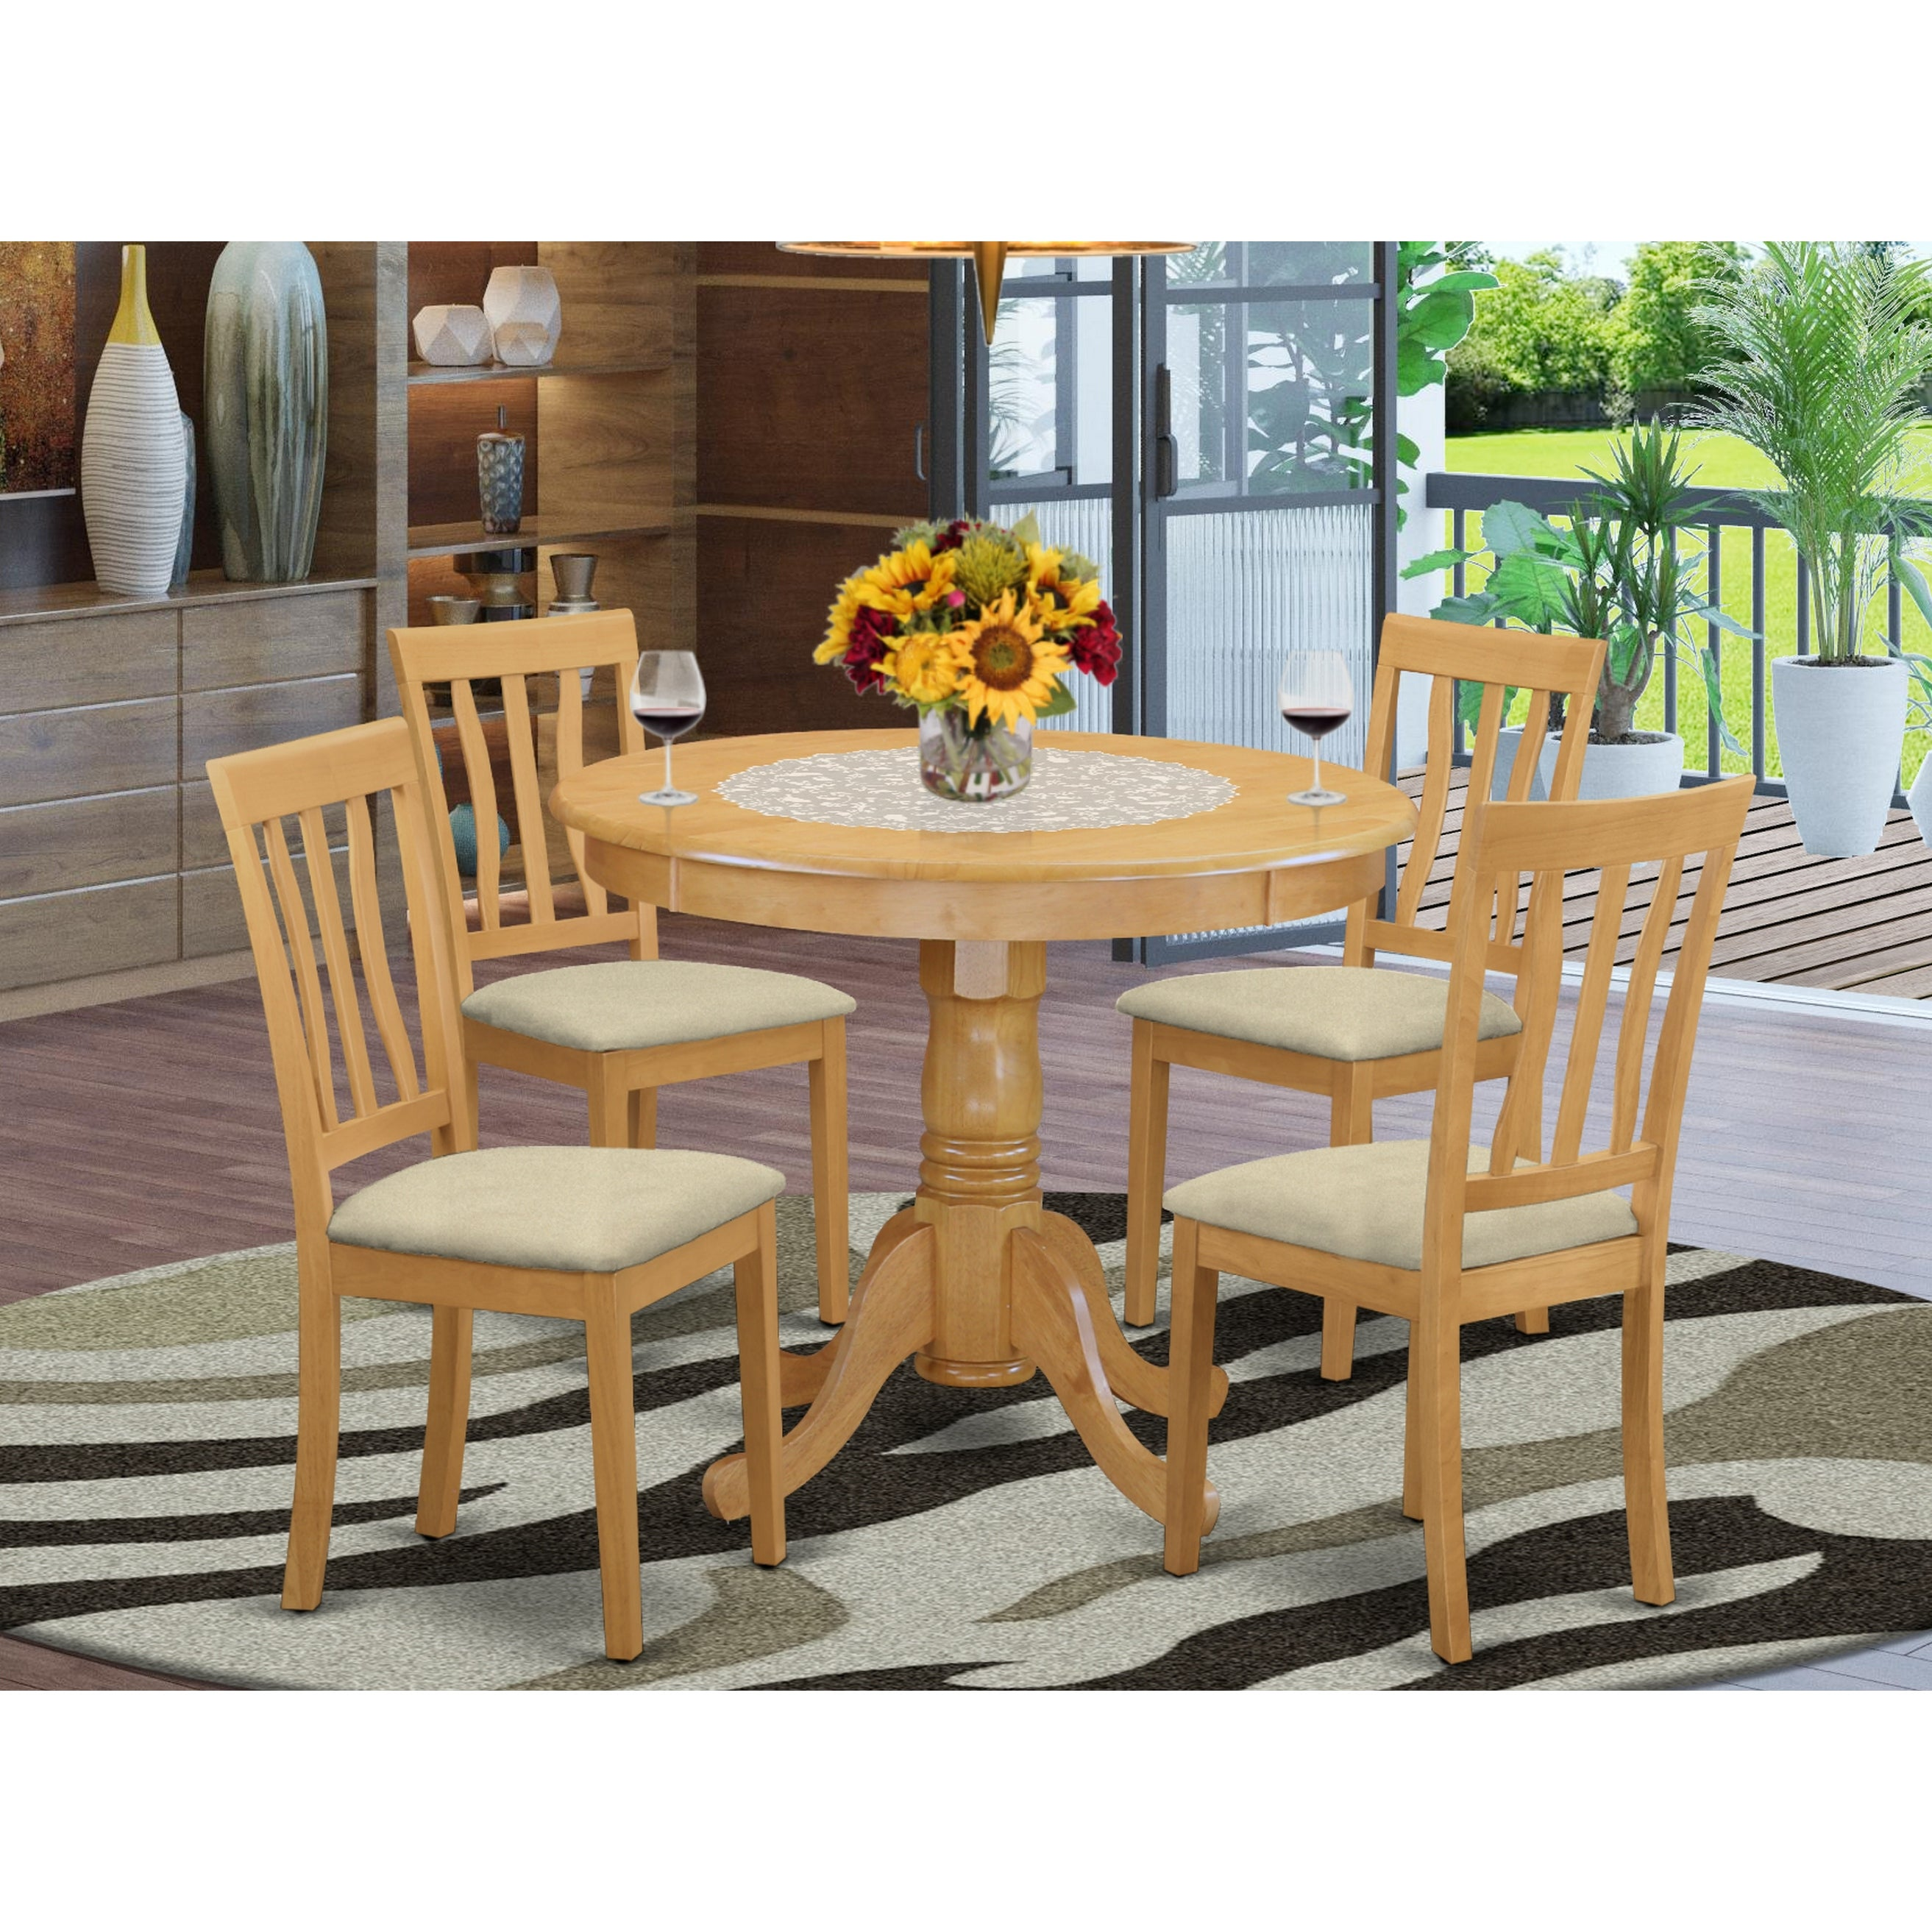 9 Pc Dining Set   Kitchen Table and 9 Chairs in Oak Finish ...